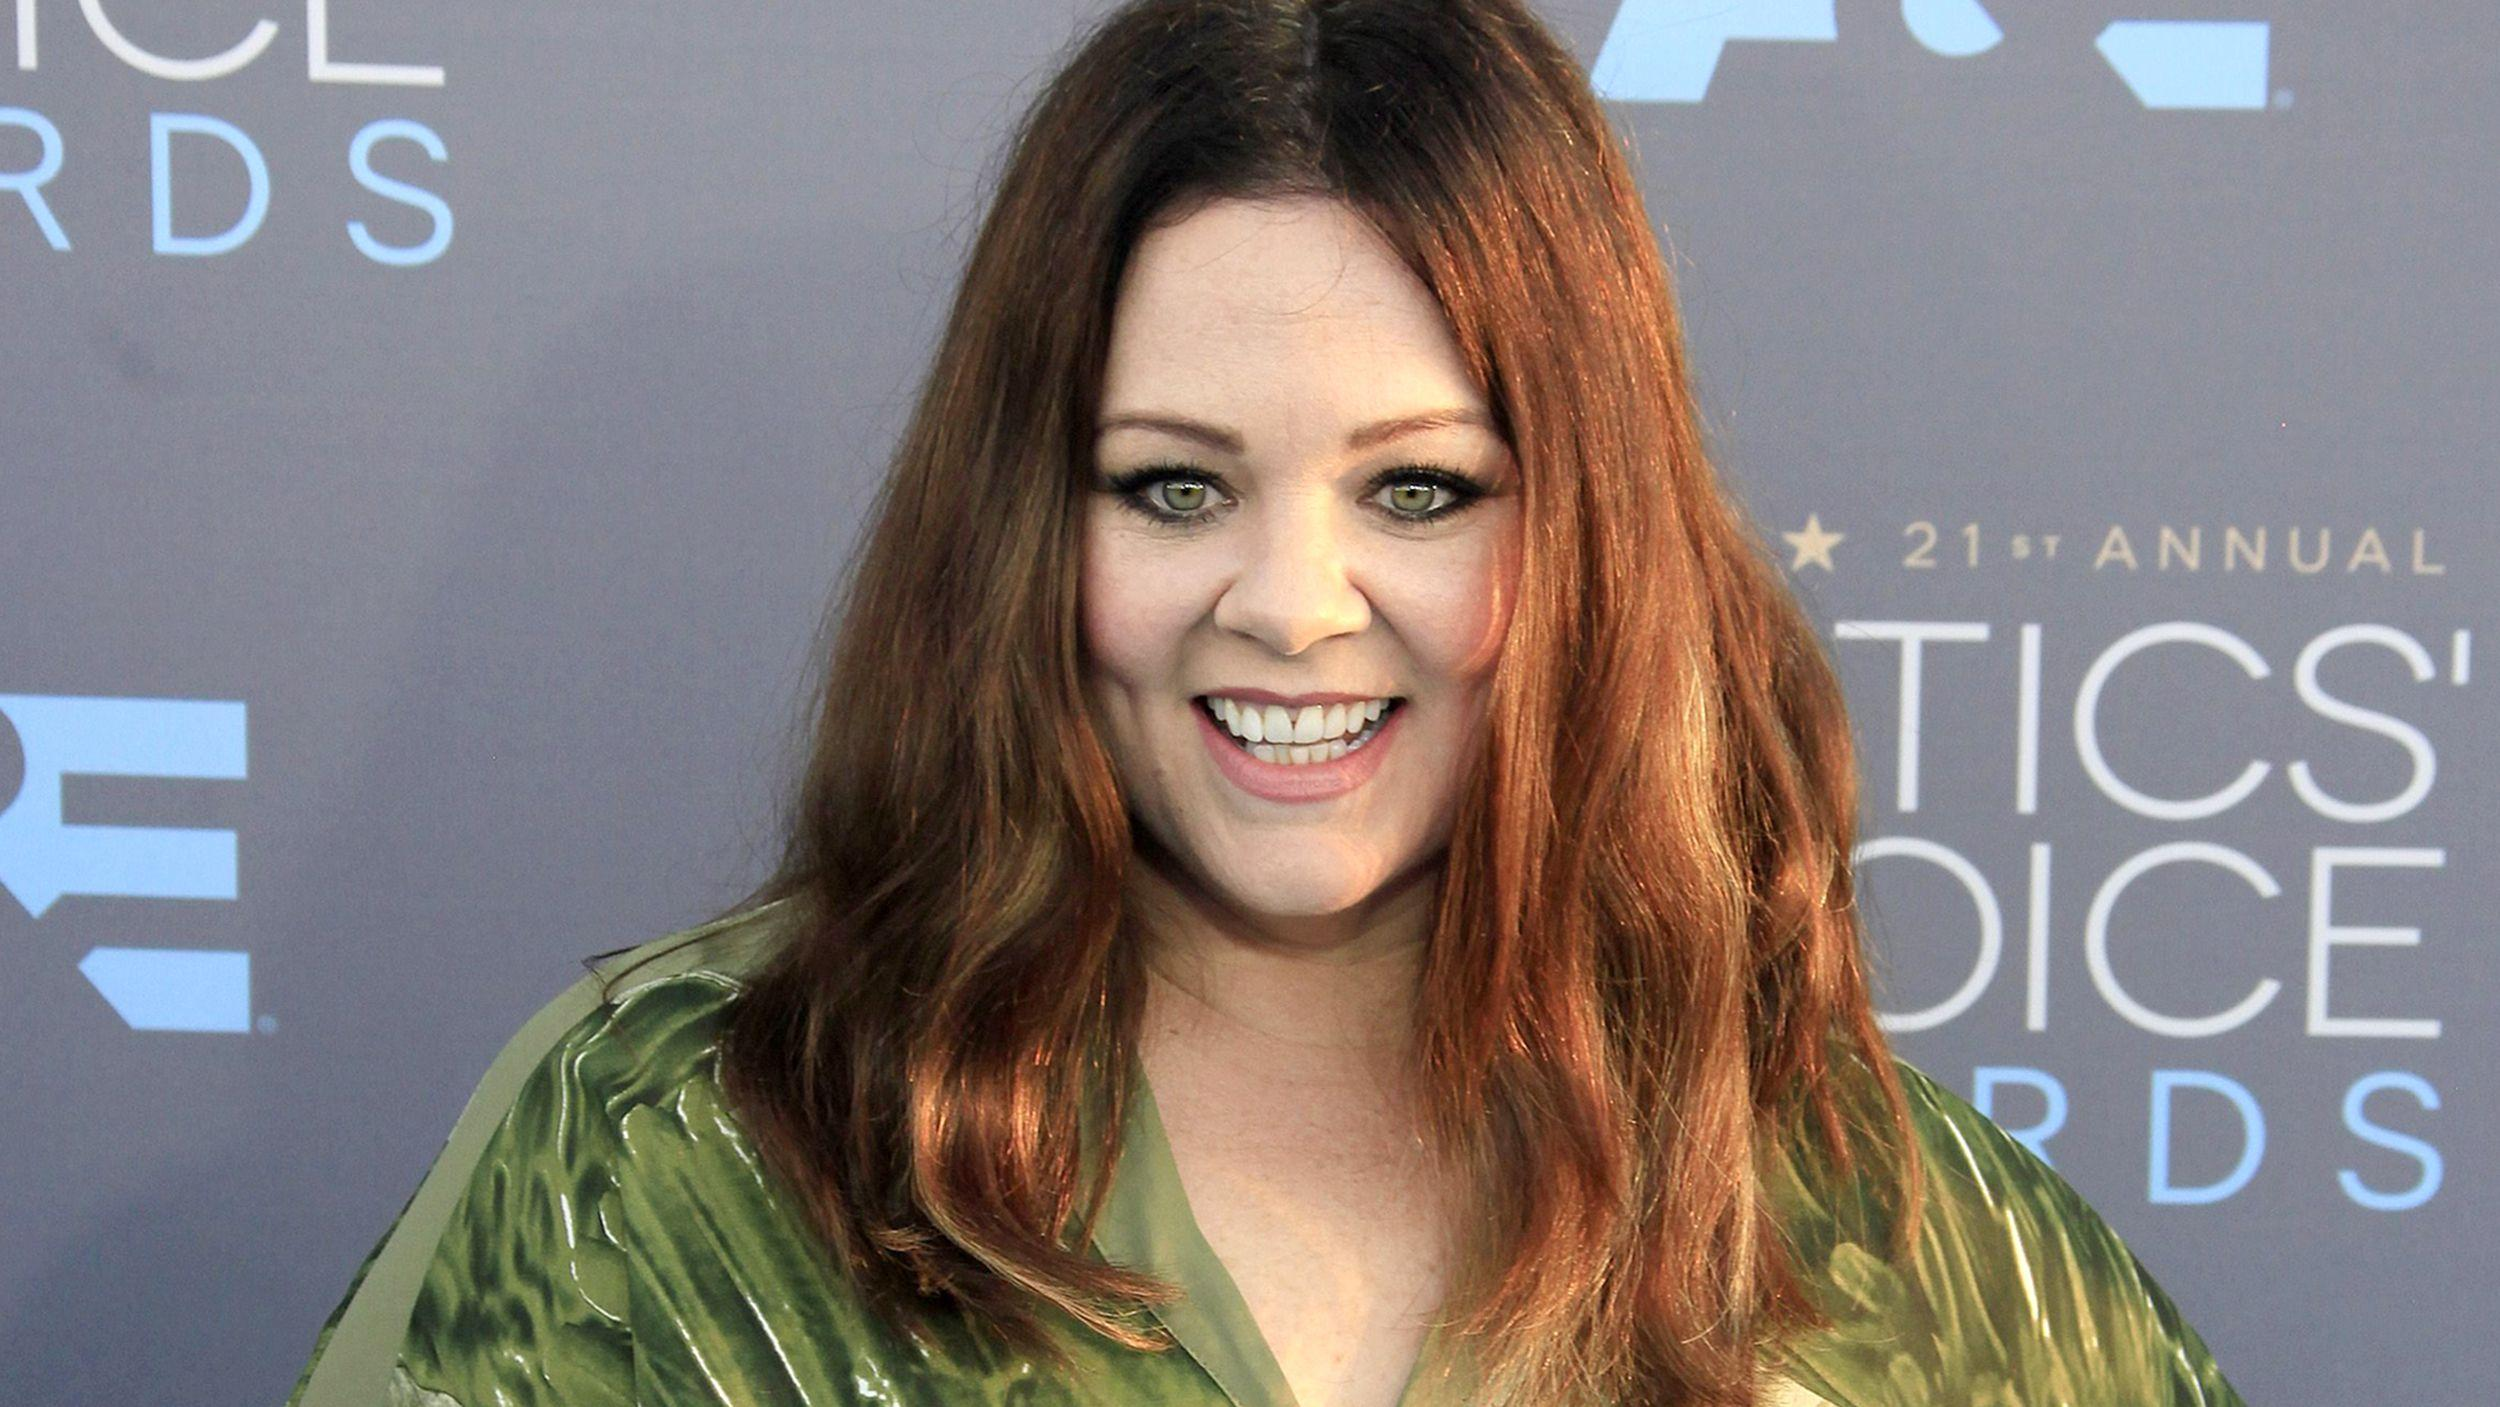 Melissa McCarthy Free HD Wallpapers Images Backgrounds